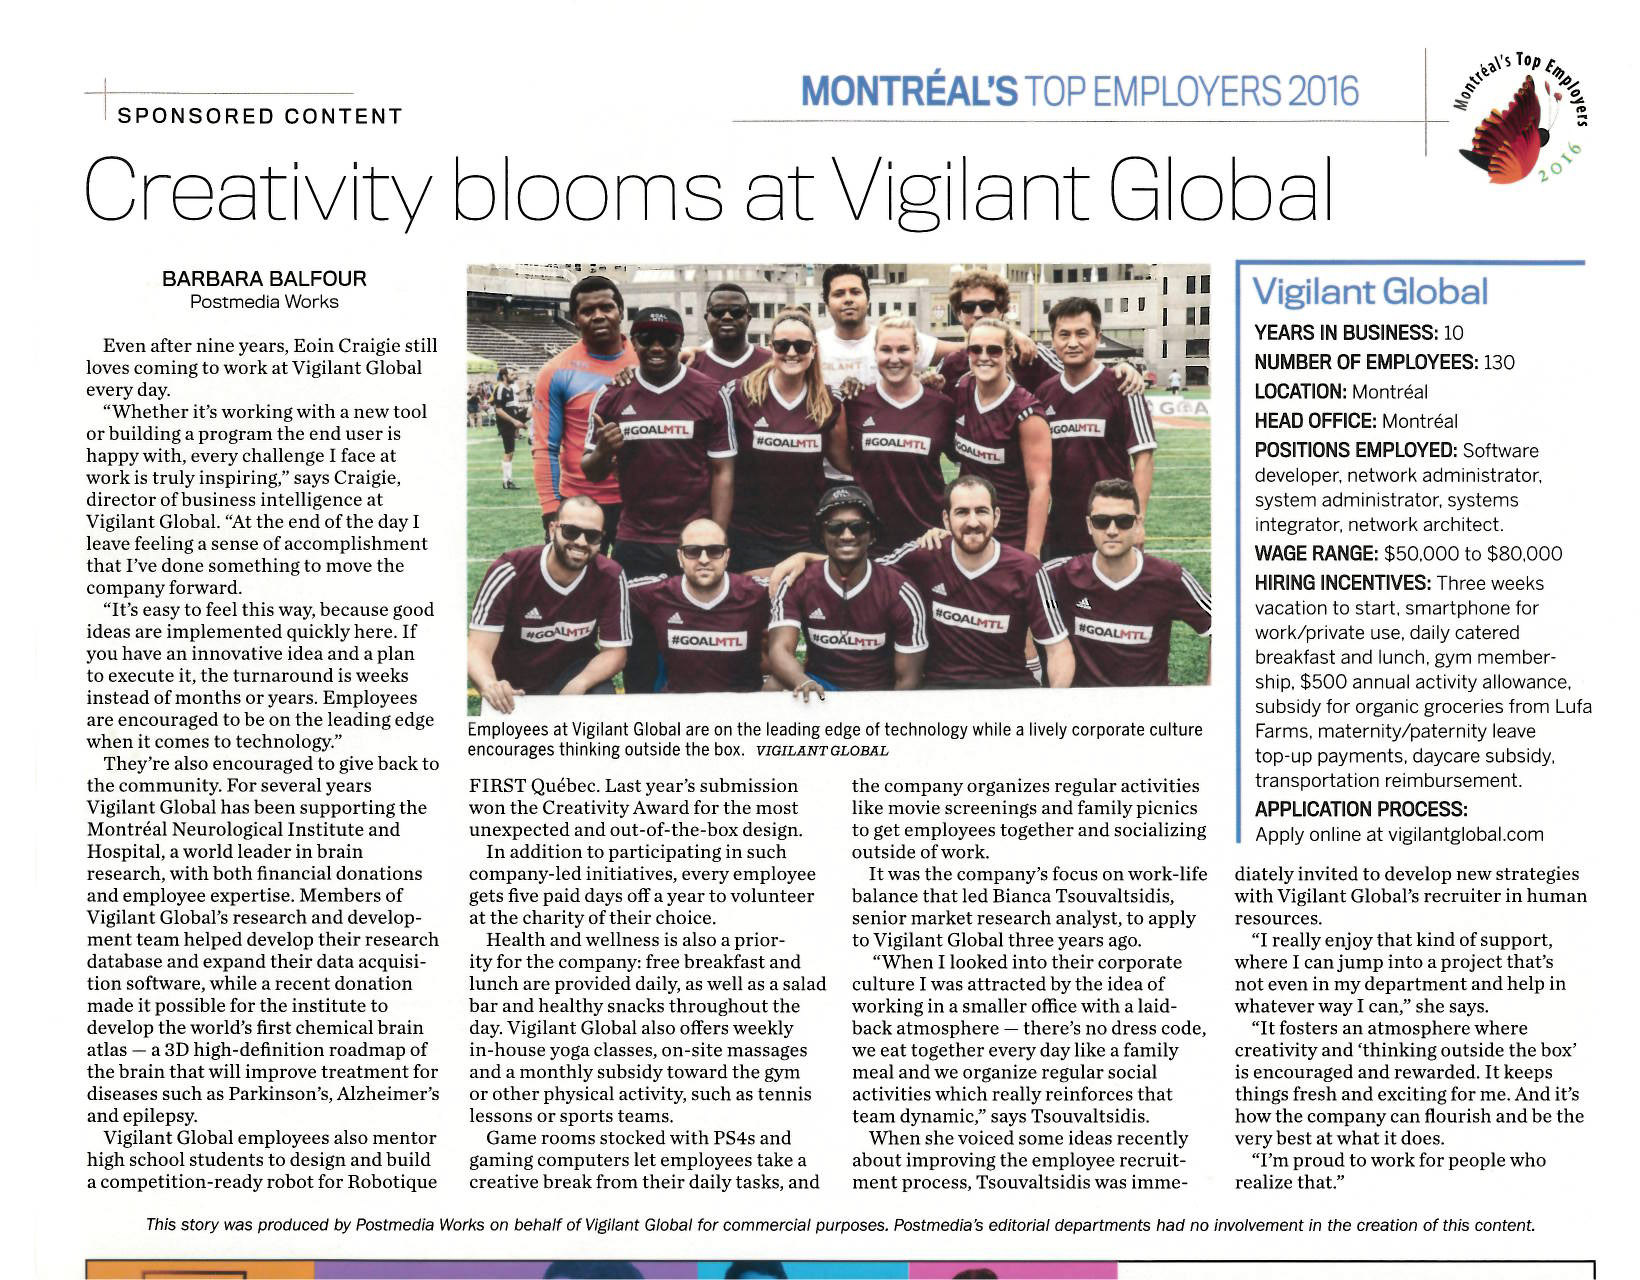 VIGILANT GLOBAL NAMED ONE OF MONTREAL'S TOP 20 EMPLOYERS FOR 2016